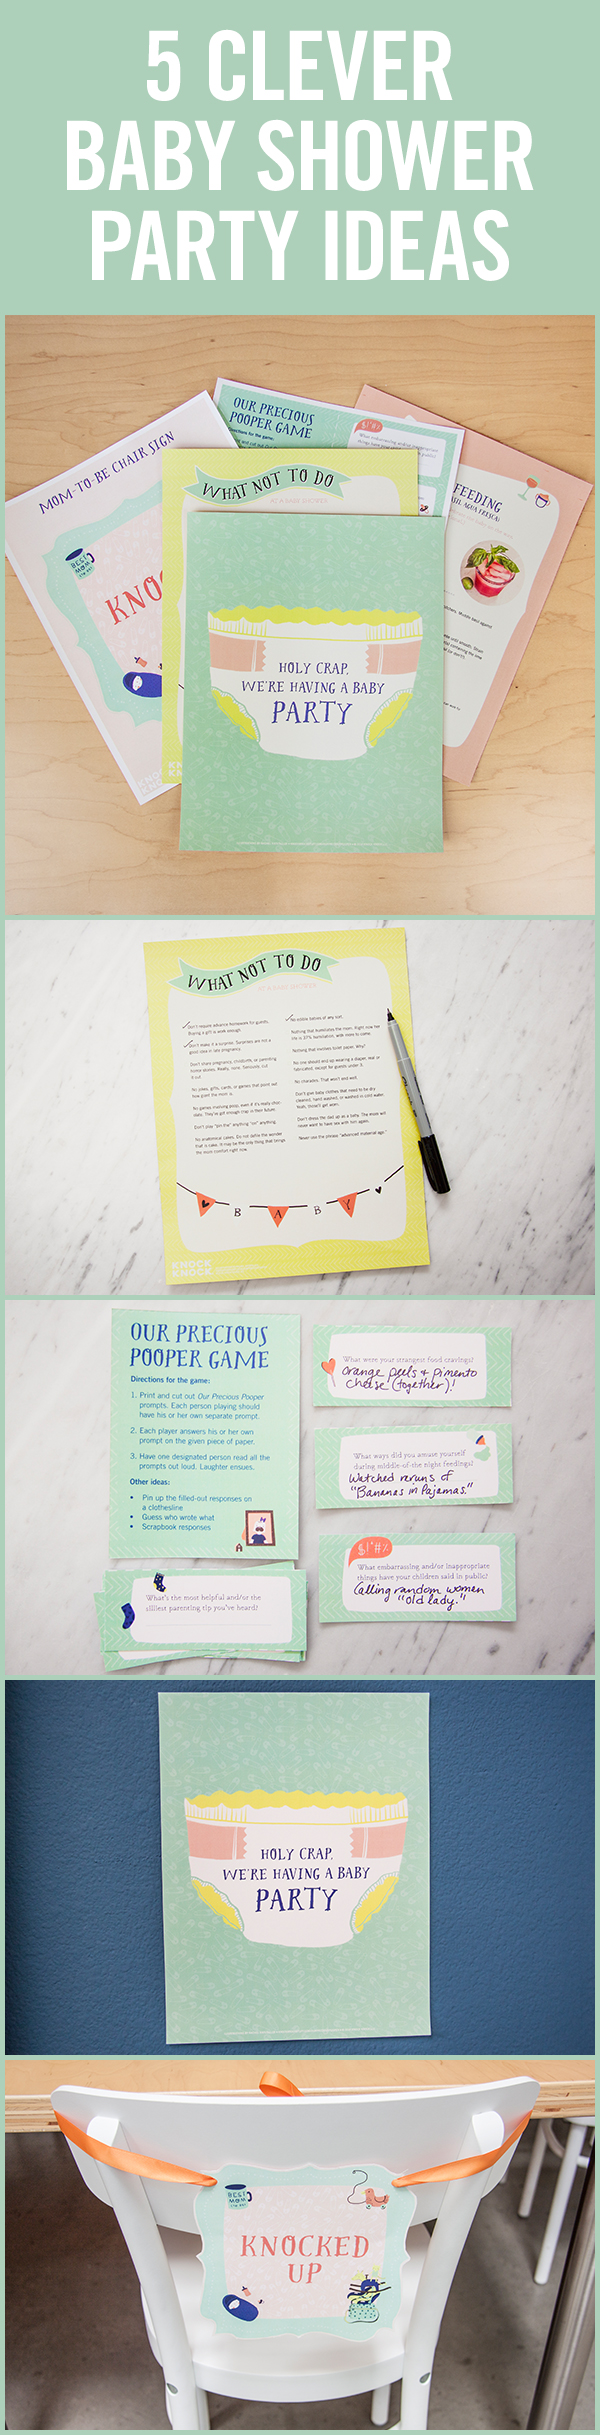 Holy Crap We're Having a Baby Shower Party Kit - Knock Knock Blog